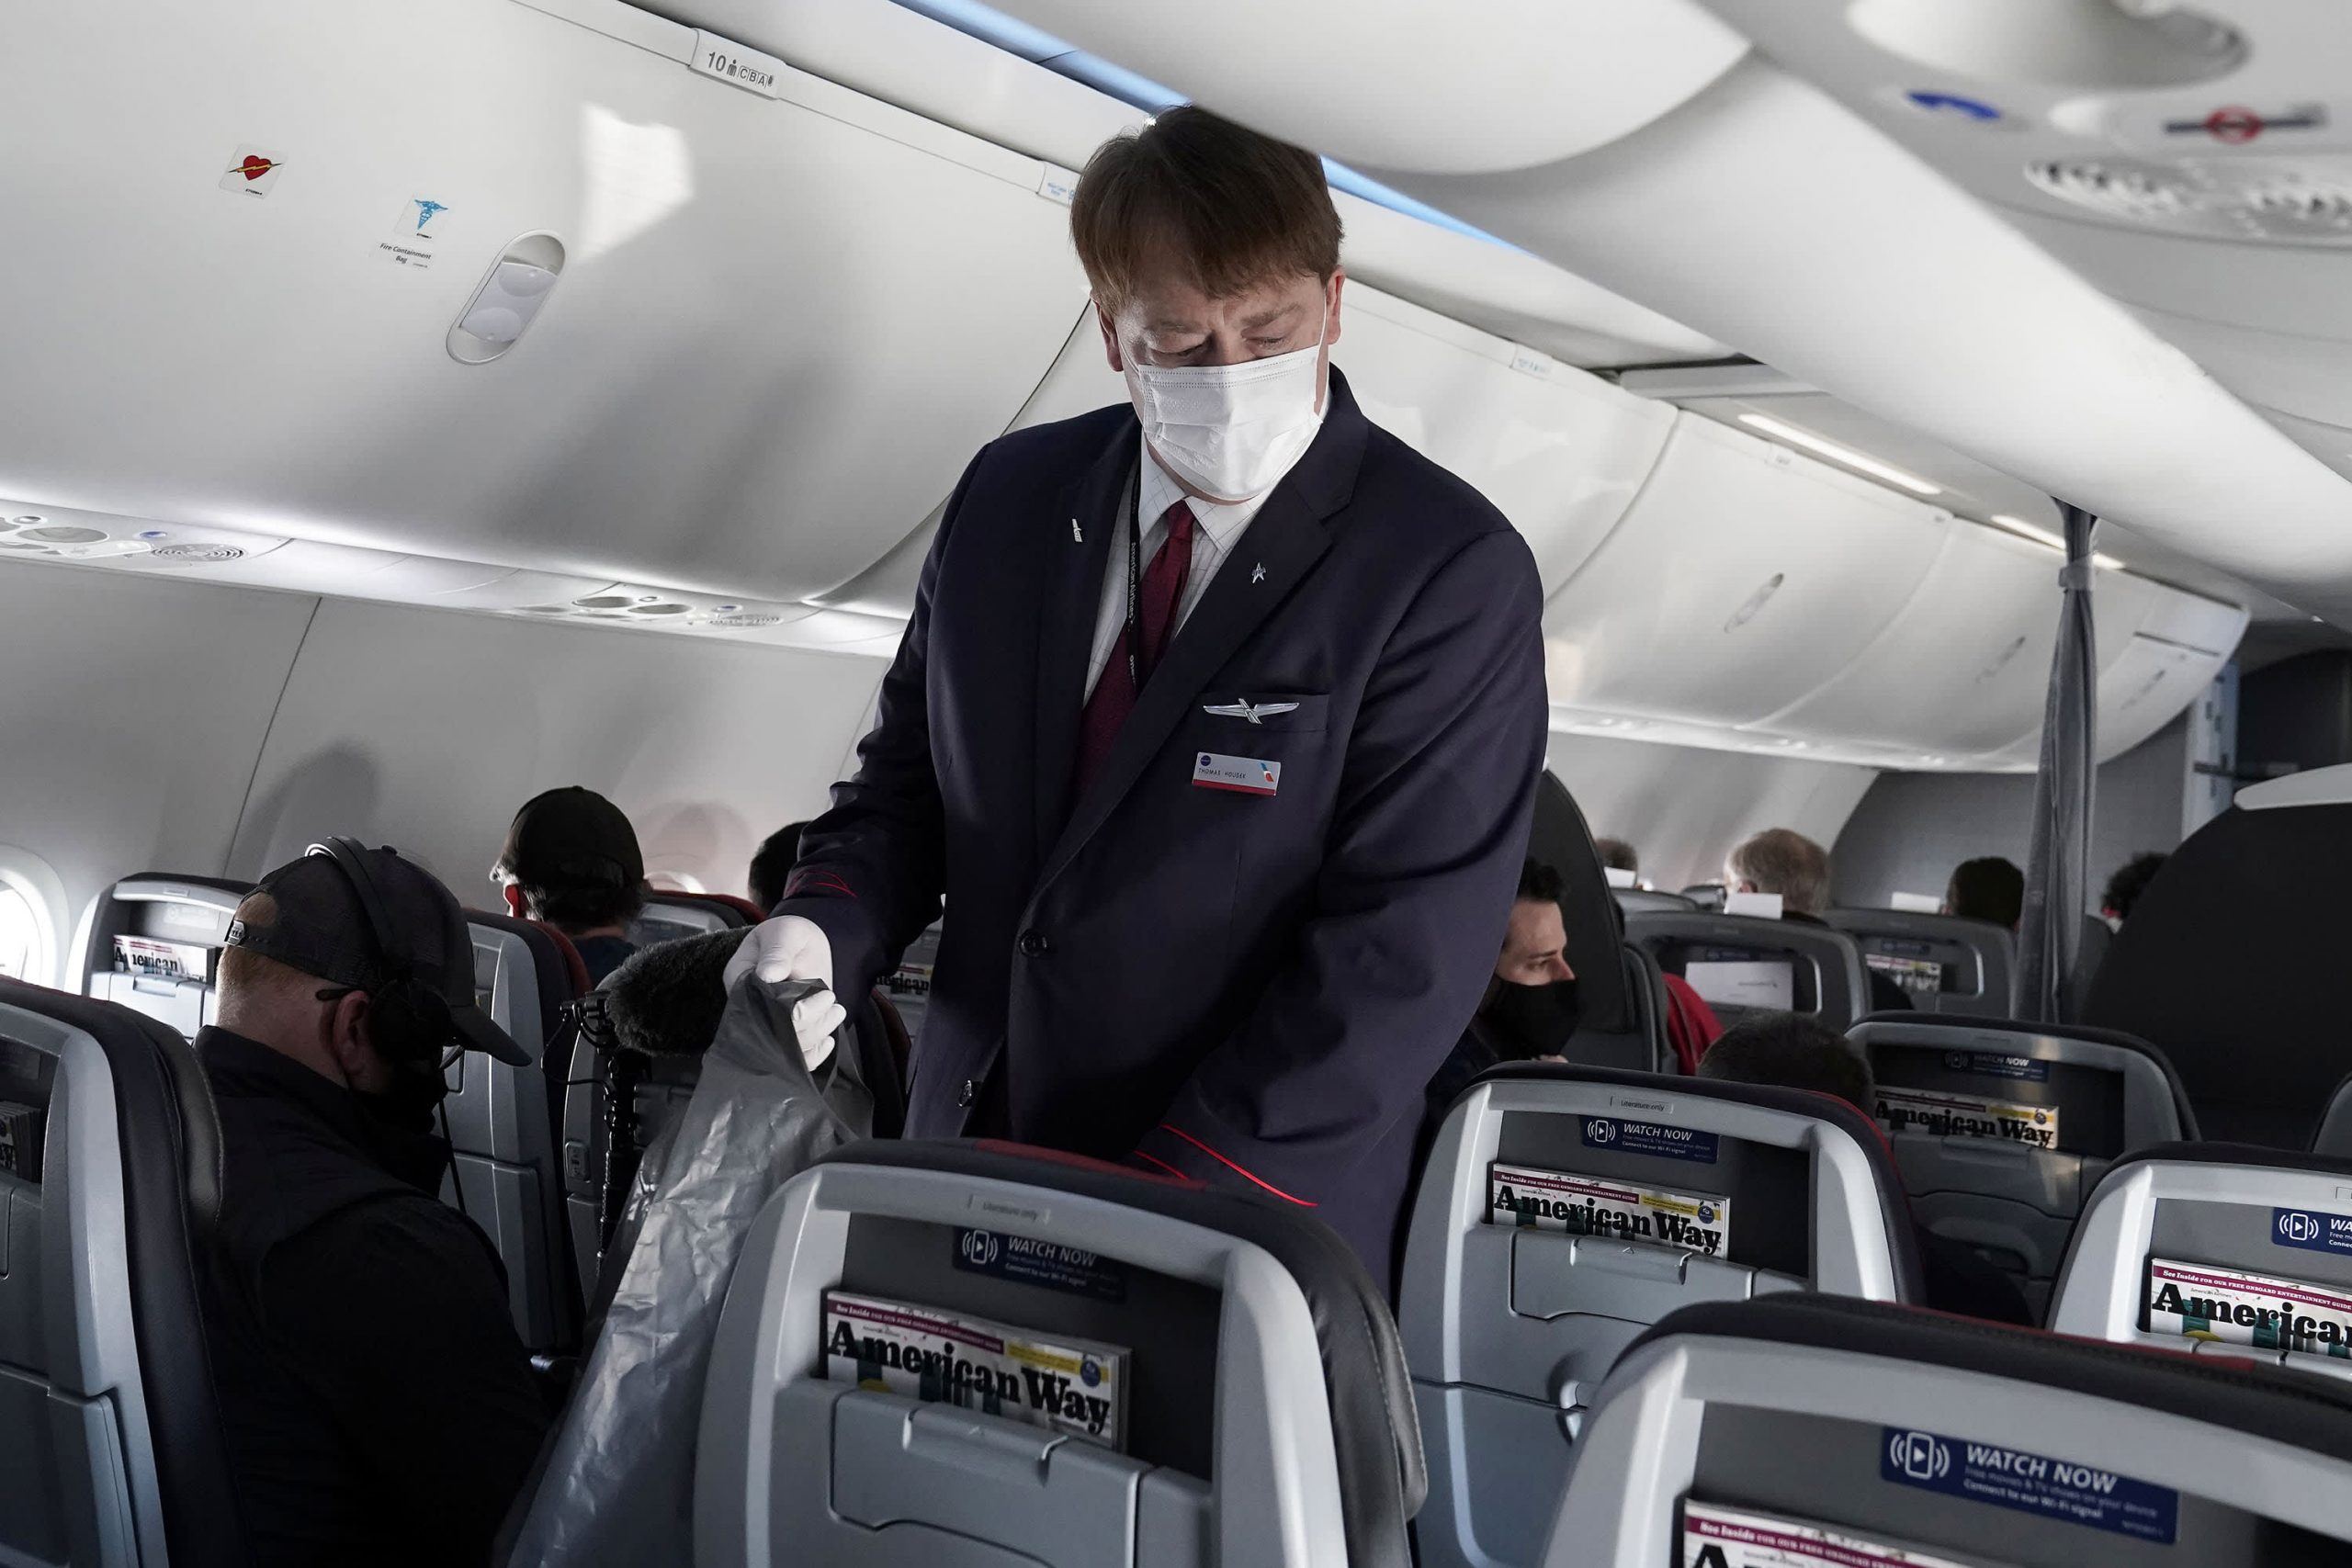 flight-attendant-unions-raise-alarms-about-disruptive-travelers-after-pro-trump-riots-at-capitol